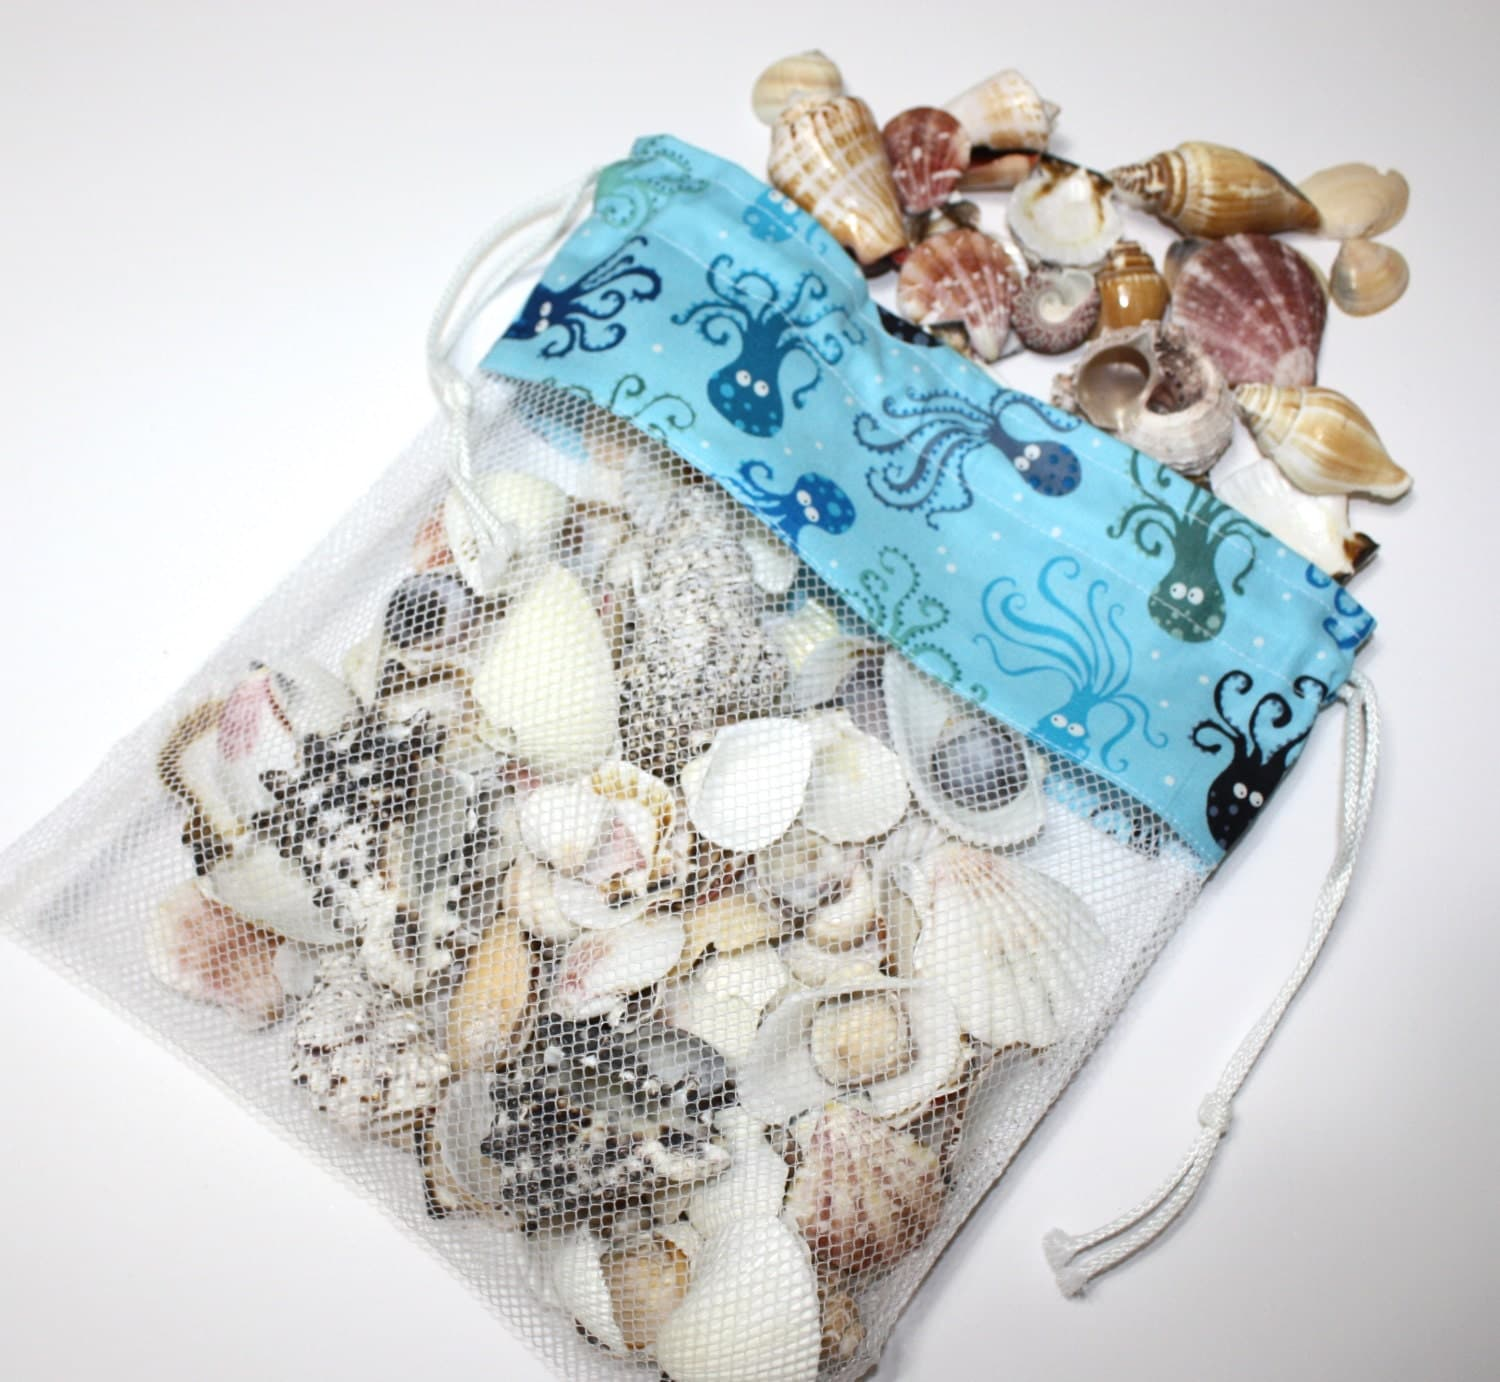 sea shell collecting tools 25 sale sea shell collecting bags drawstring seashell